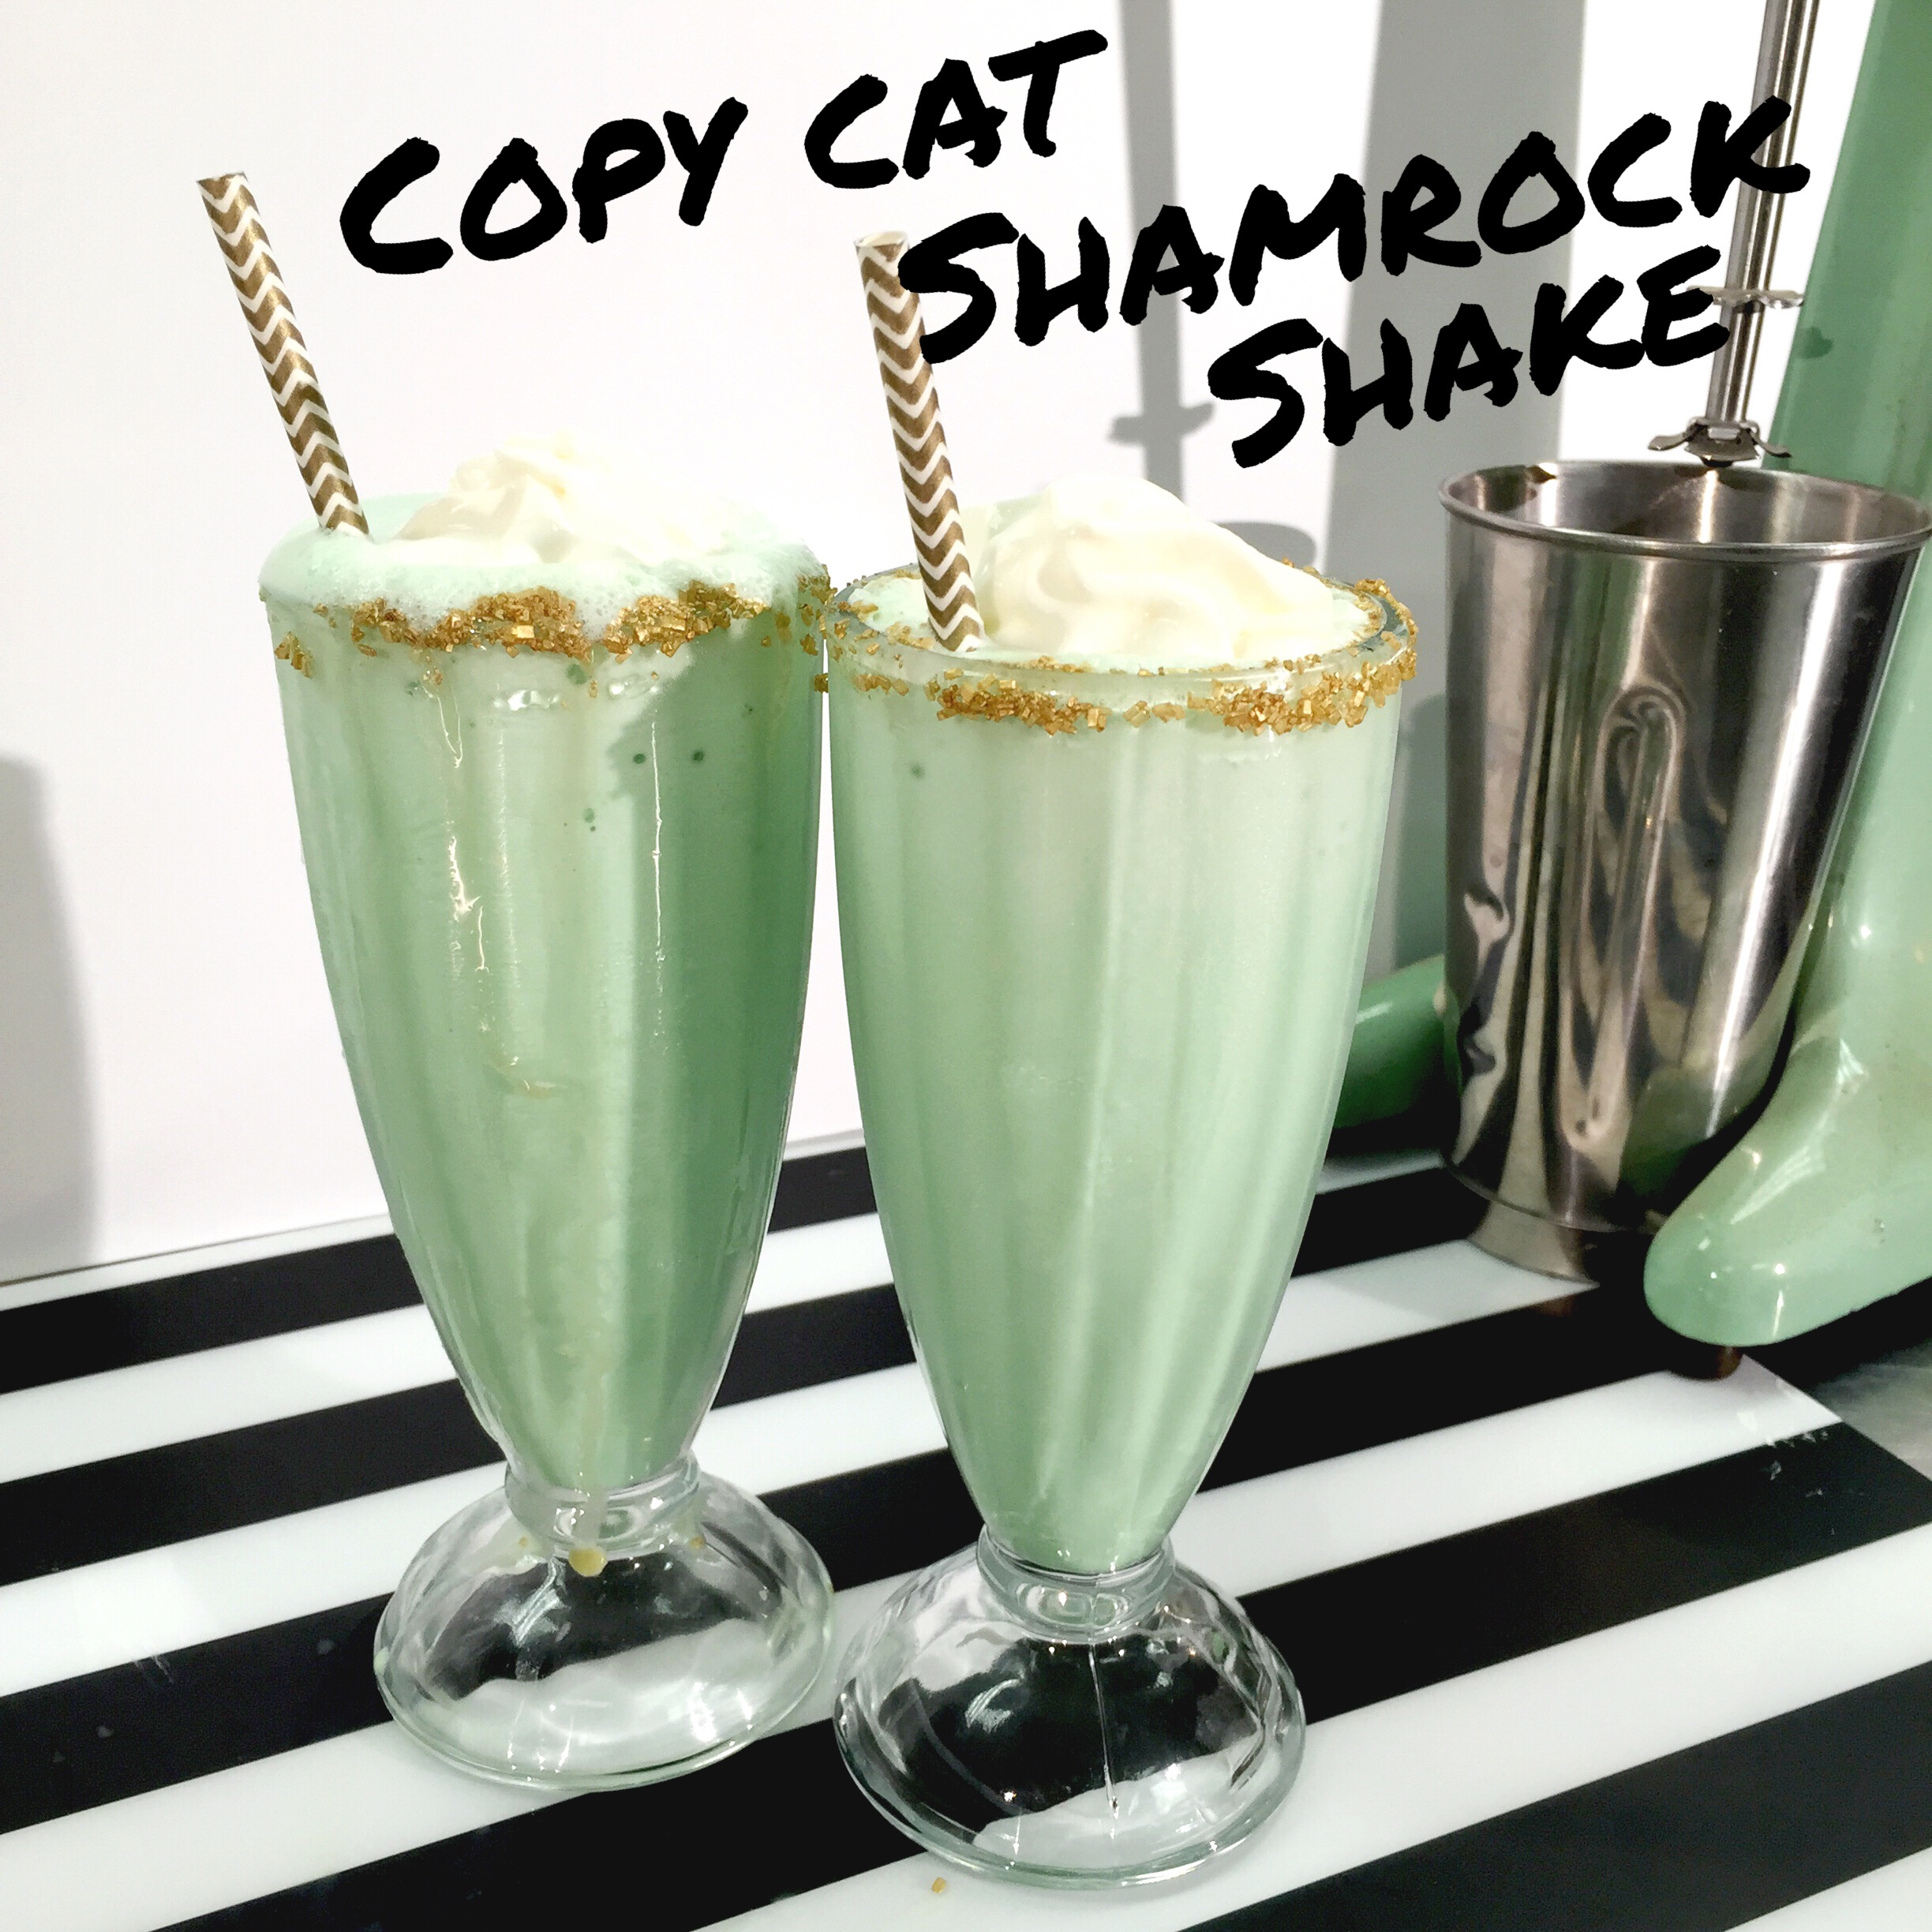 Copy Cat Shamrock Shake recipe to recreate at home for St. Patrick's Day. www.ChefShayna.com